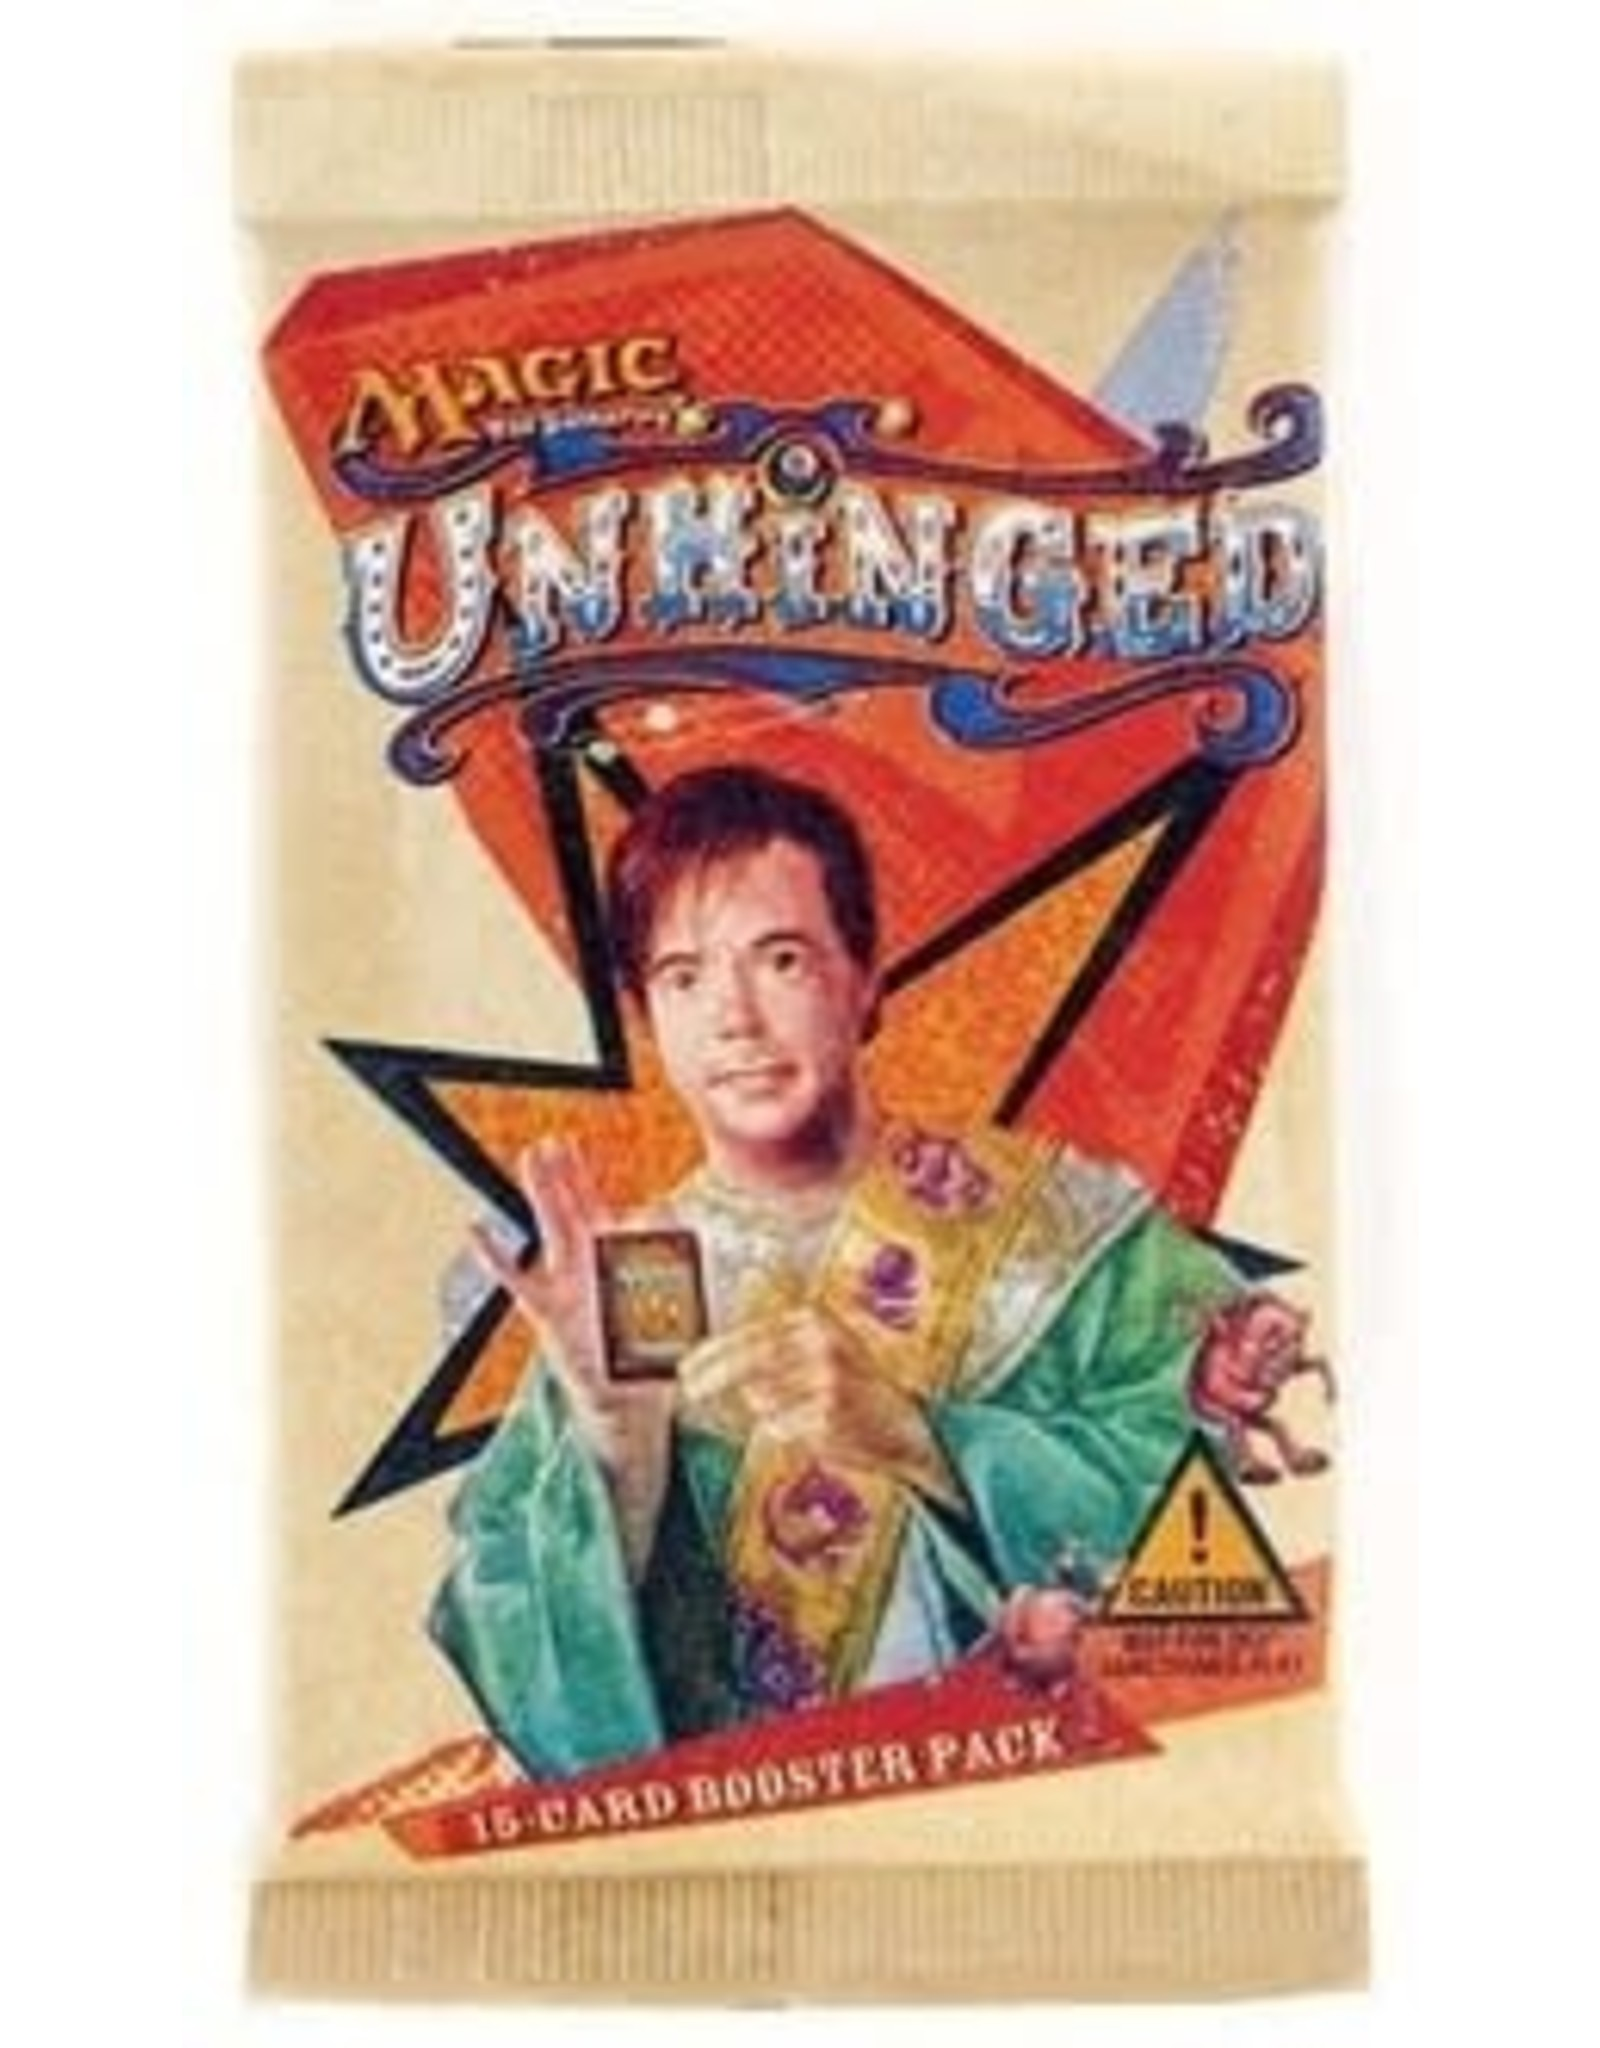 Wizards of the Coast Unhinged Booster Pack